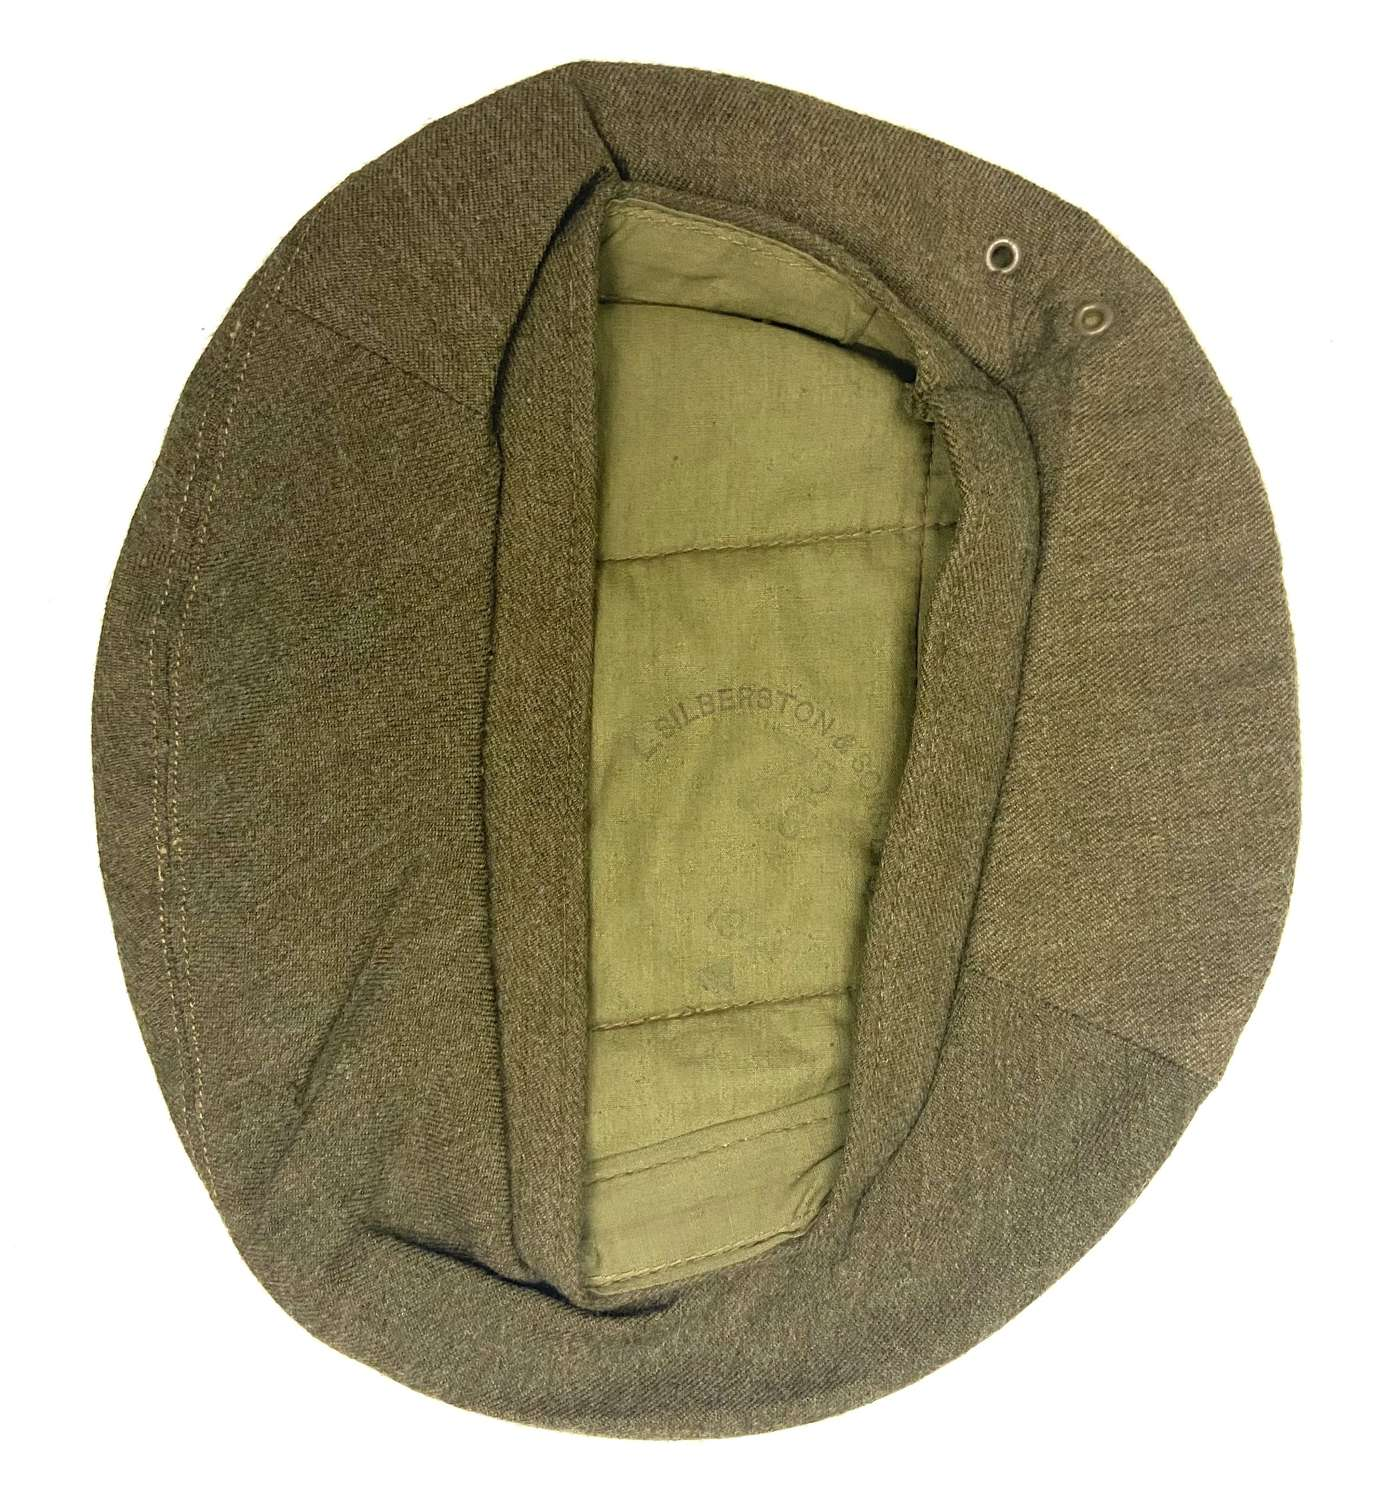 Original 1944 Dated British Army GS Beret - Size 7 3/8